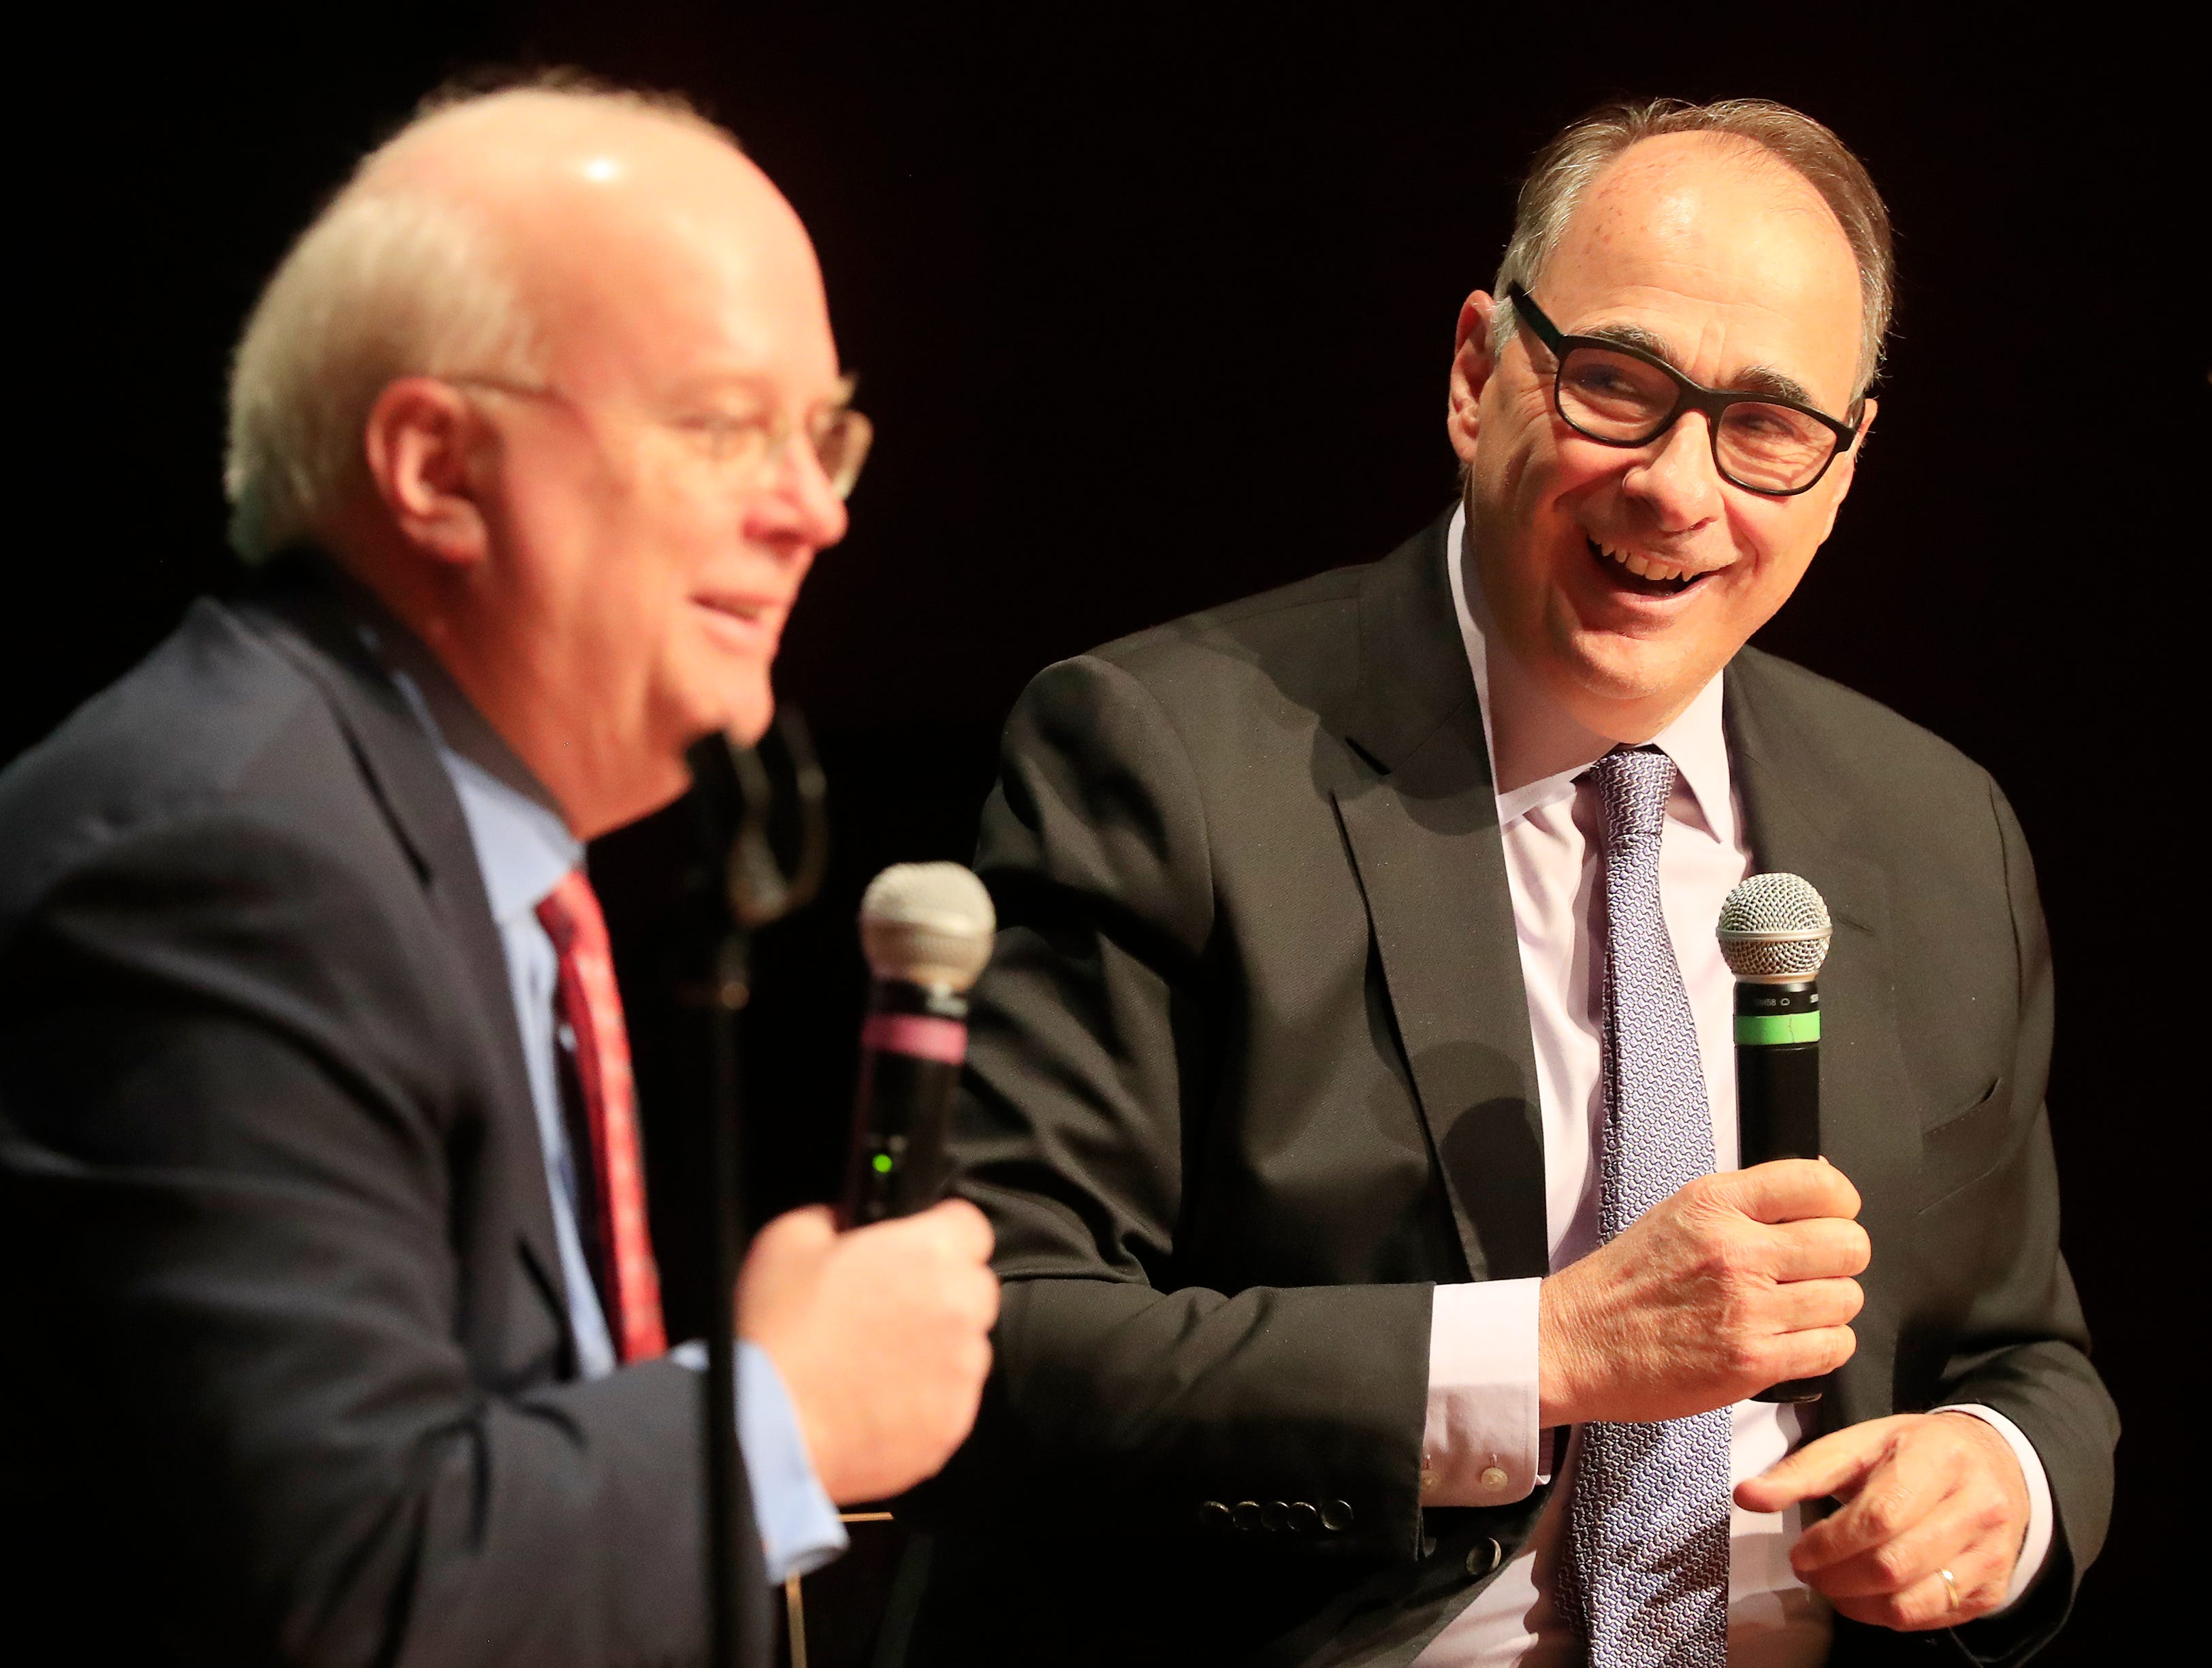 Karl Rove, David Axelrod talk politics, elections - and how to win Wisconsin